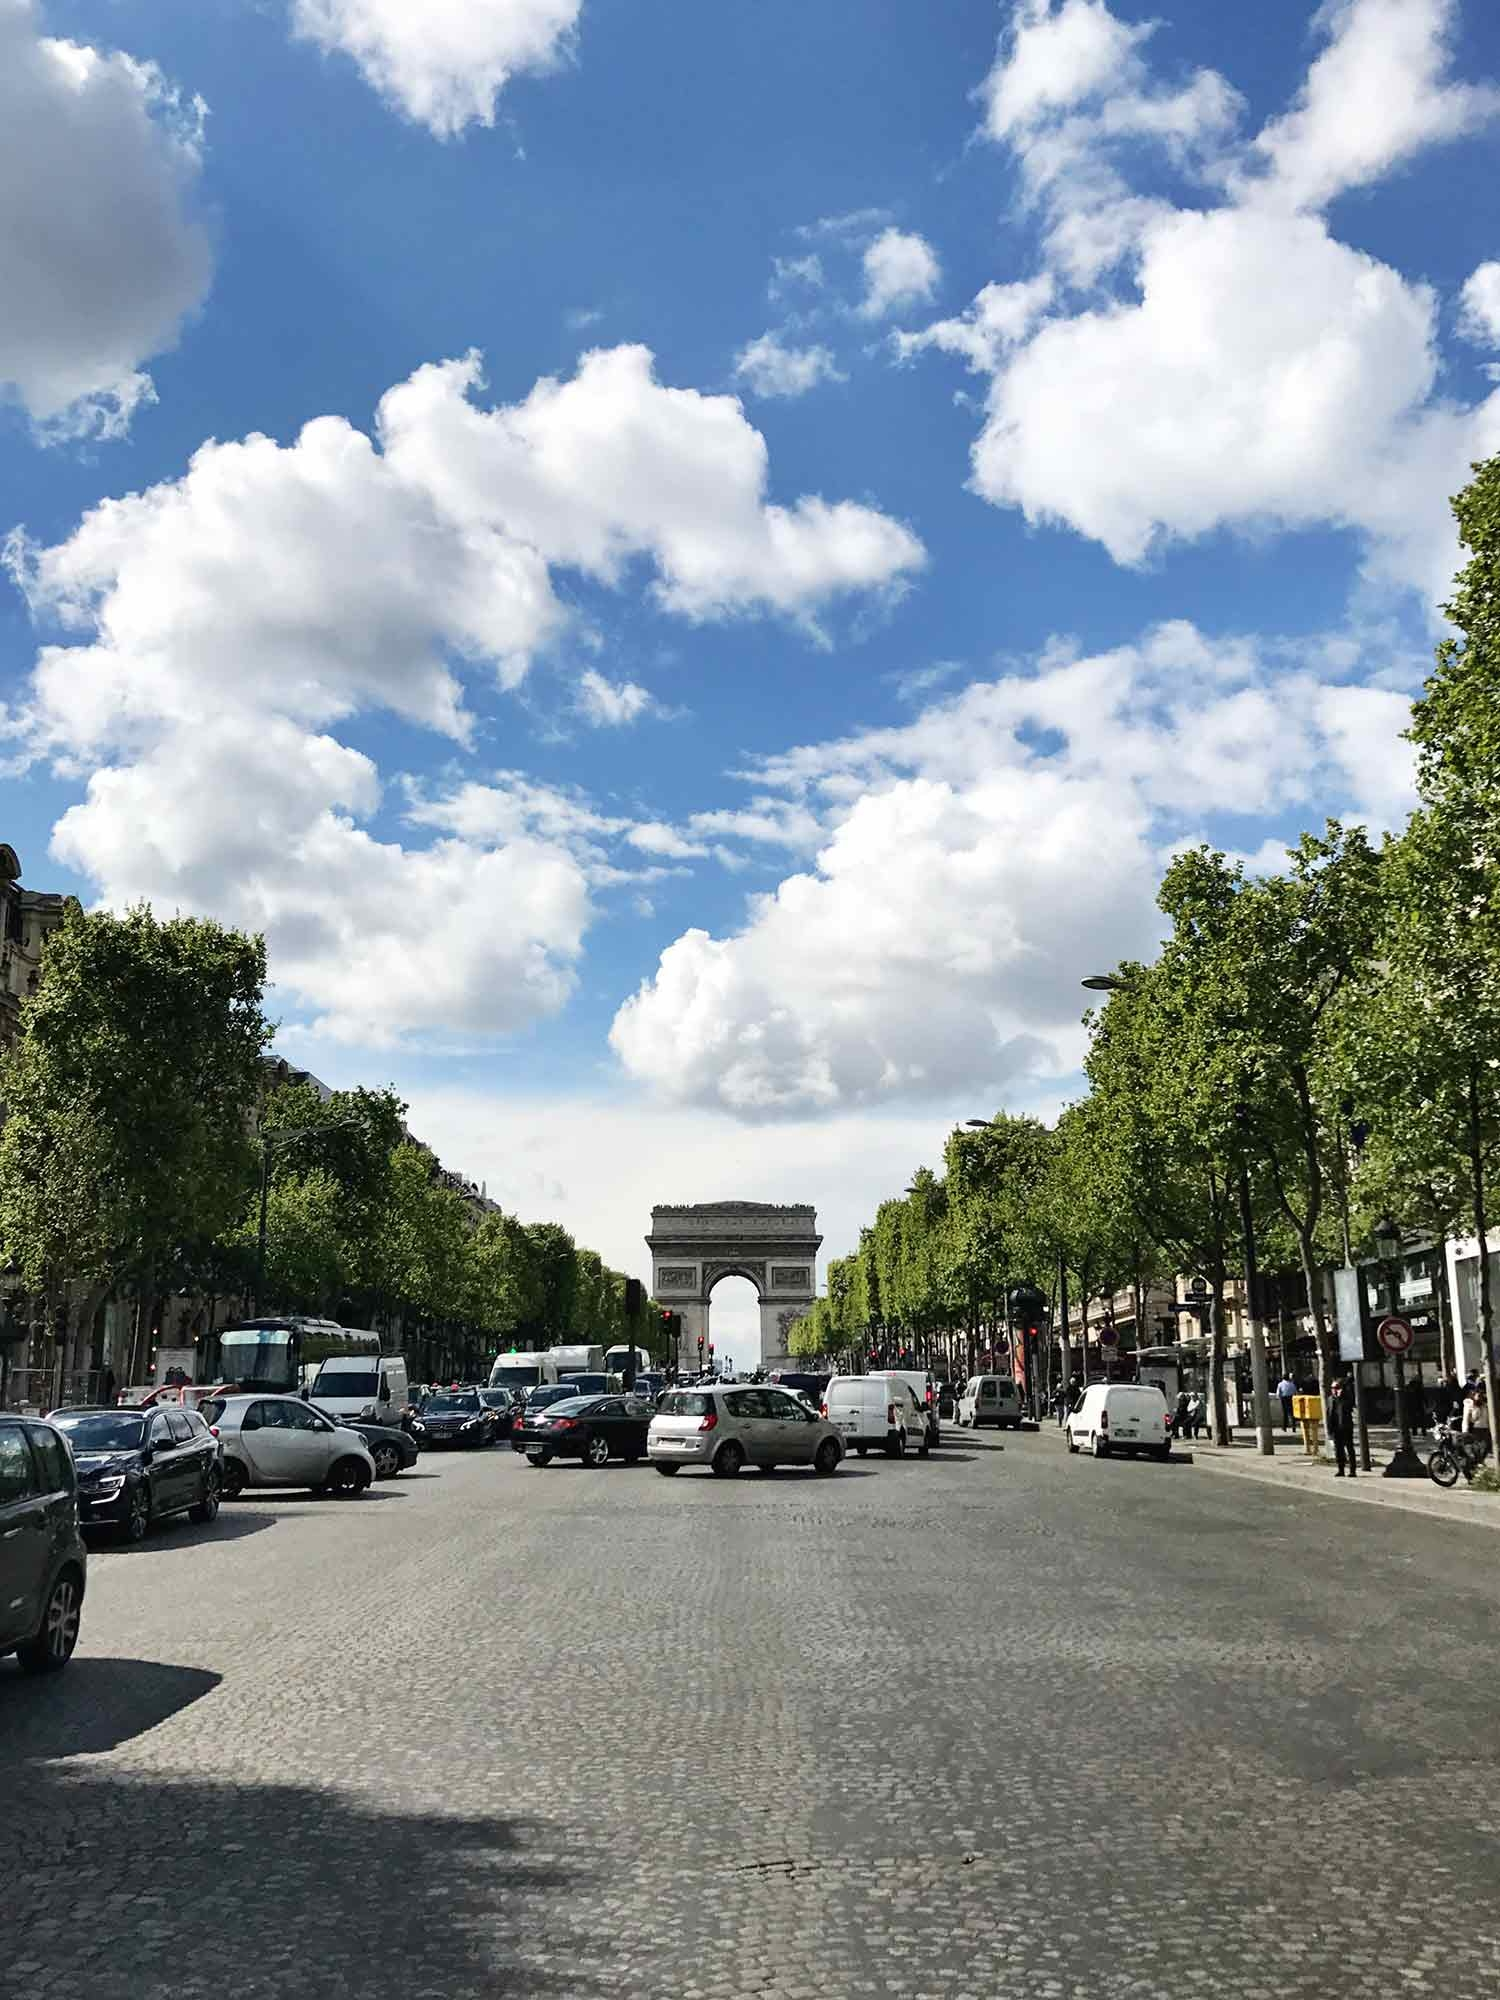 The road to the Arc De Triomphe is filled with cars and lined with perfectly planted trees